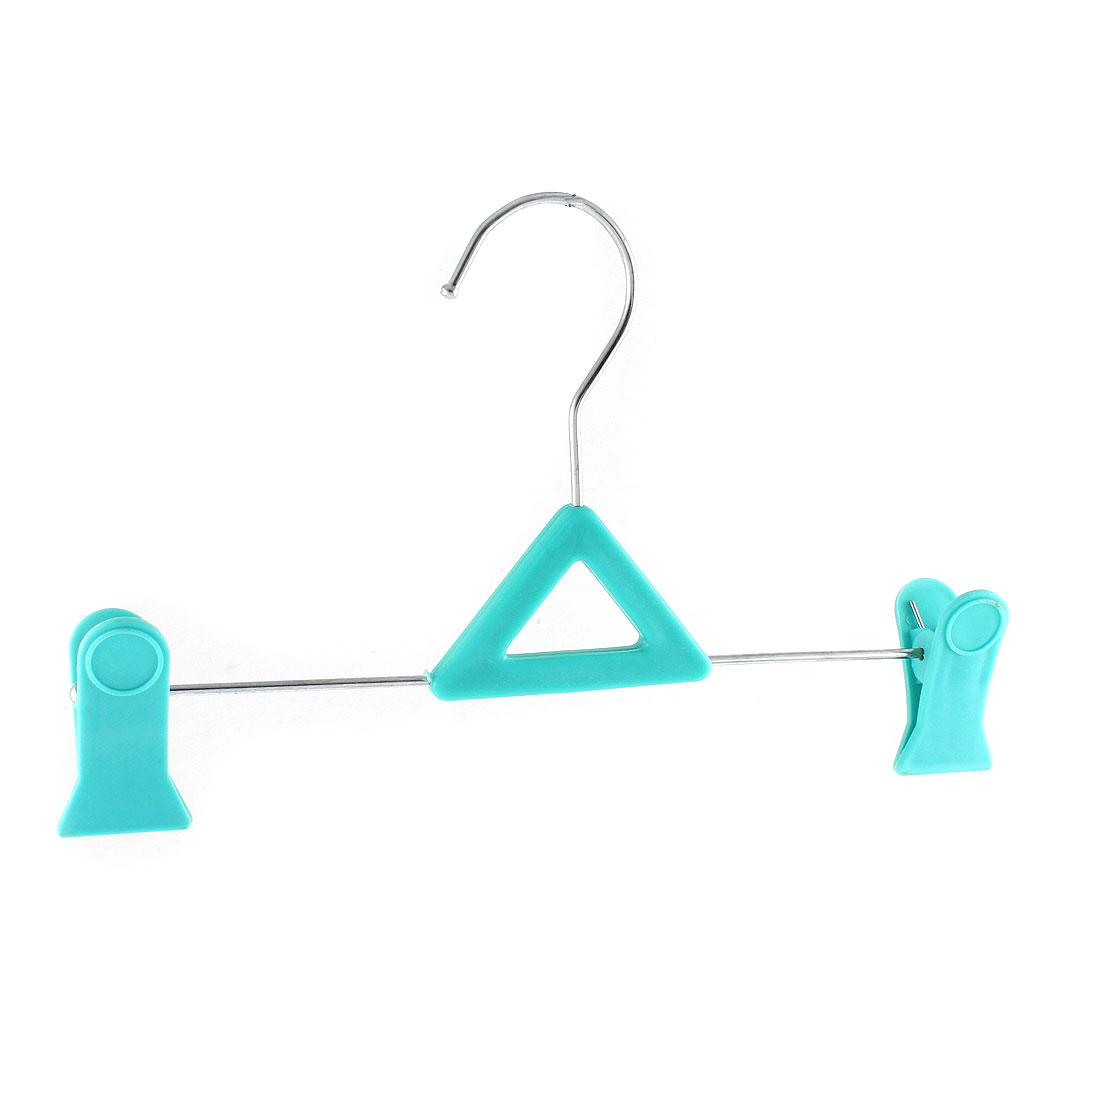 Clothes Socks Clip Hanger Peg Drying Rack Cyan Color